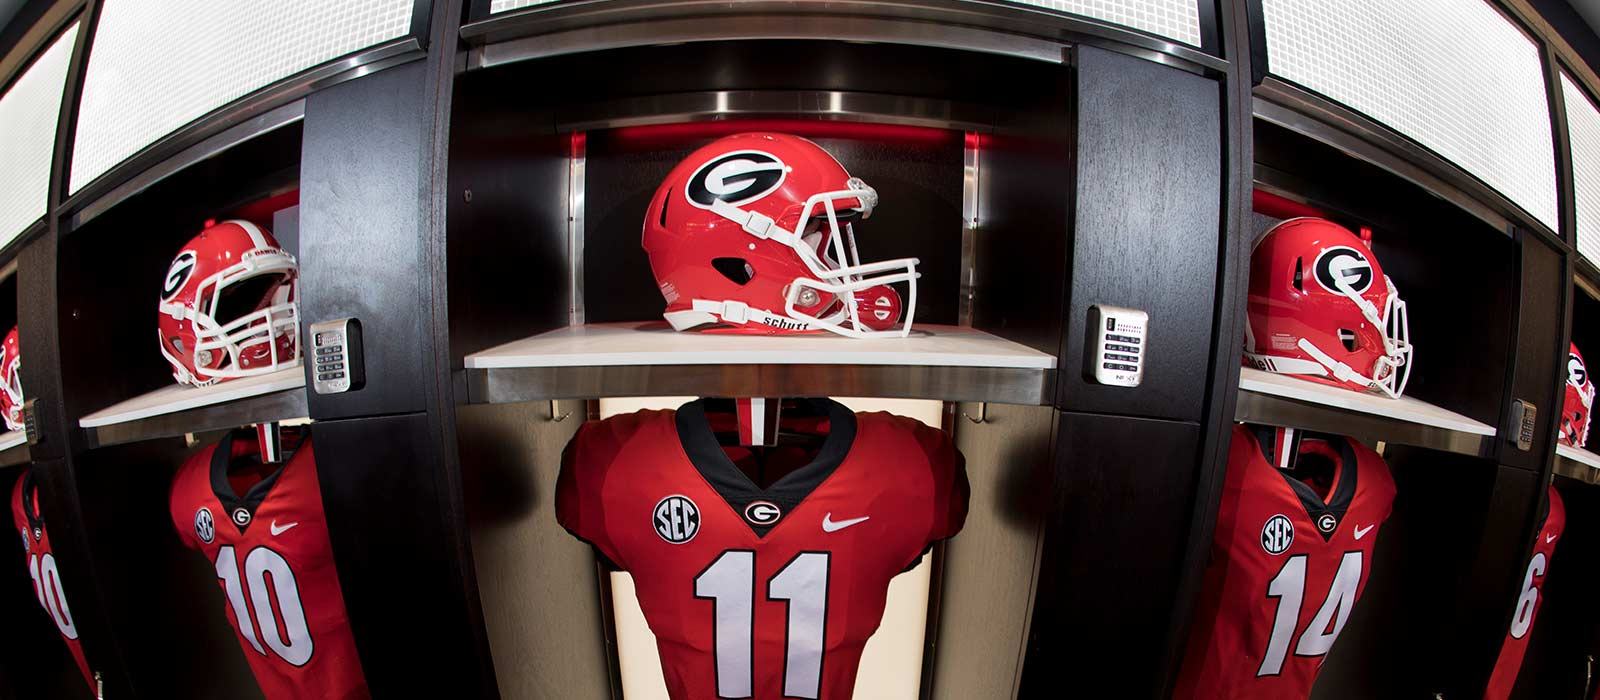 UGA Sanford Stadium - West End Zone